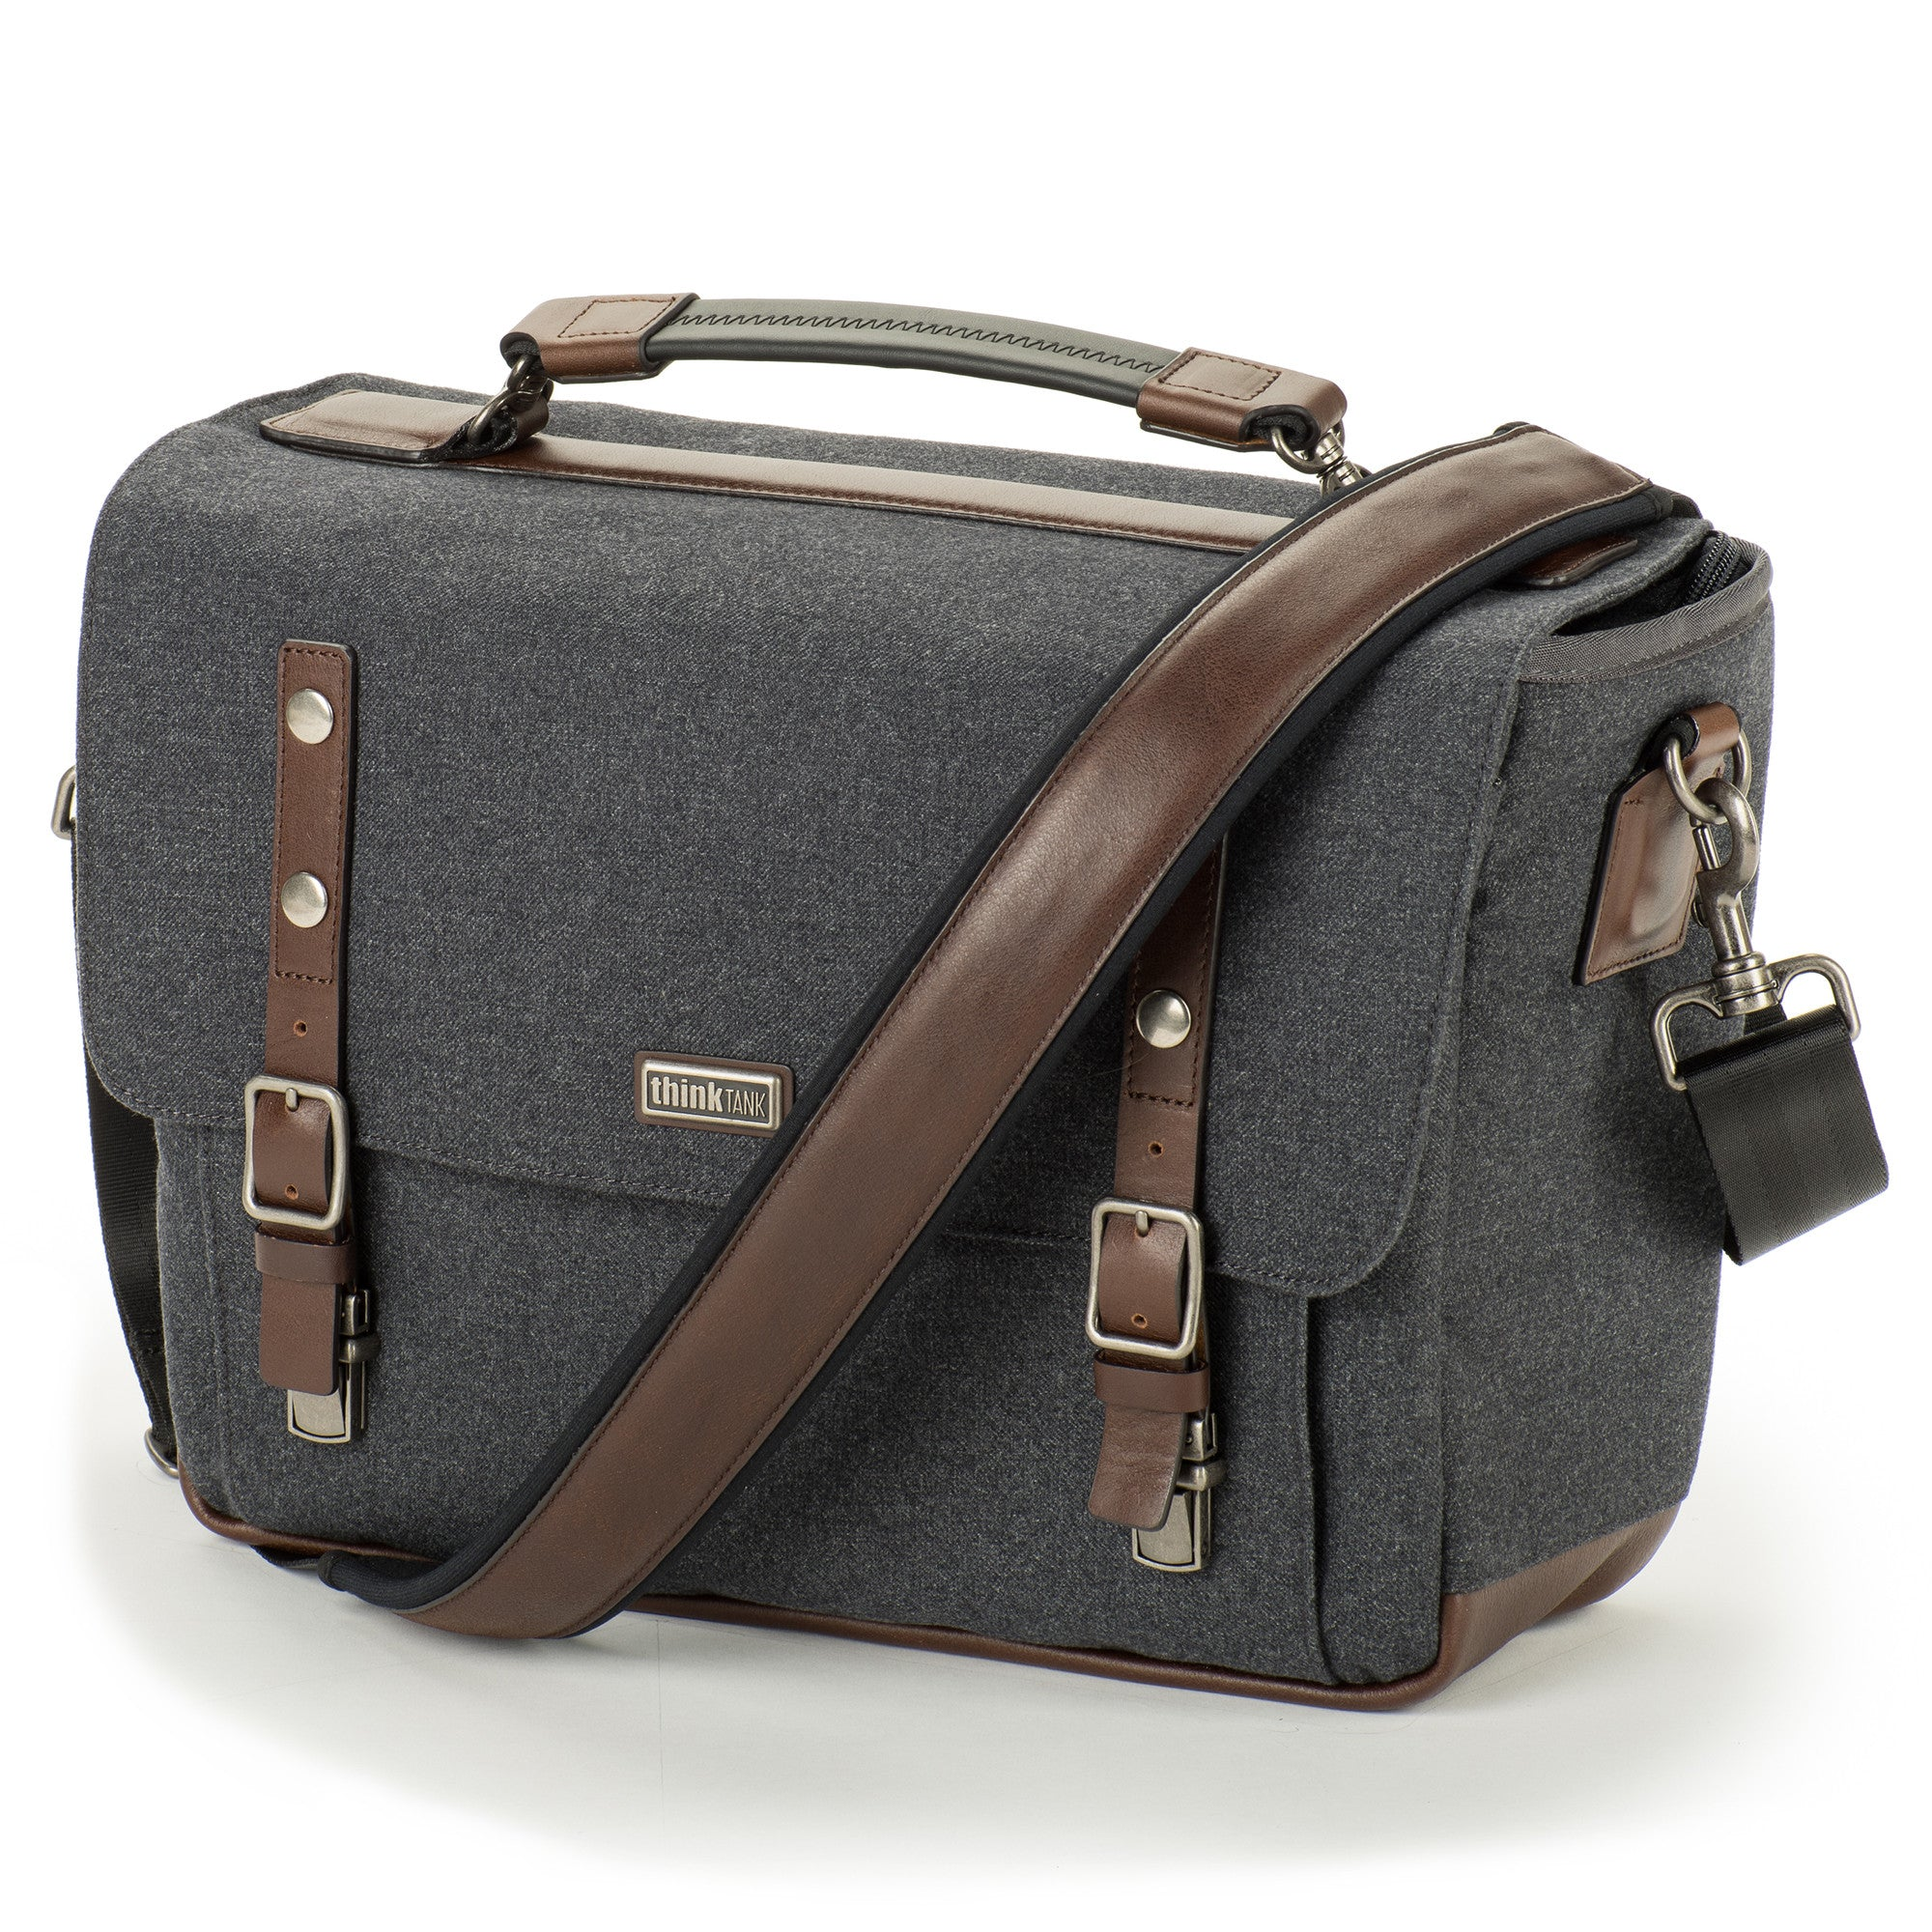 New 'Signature' Shoulder Camera Bag Series Features Advanced Fabrics